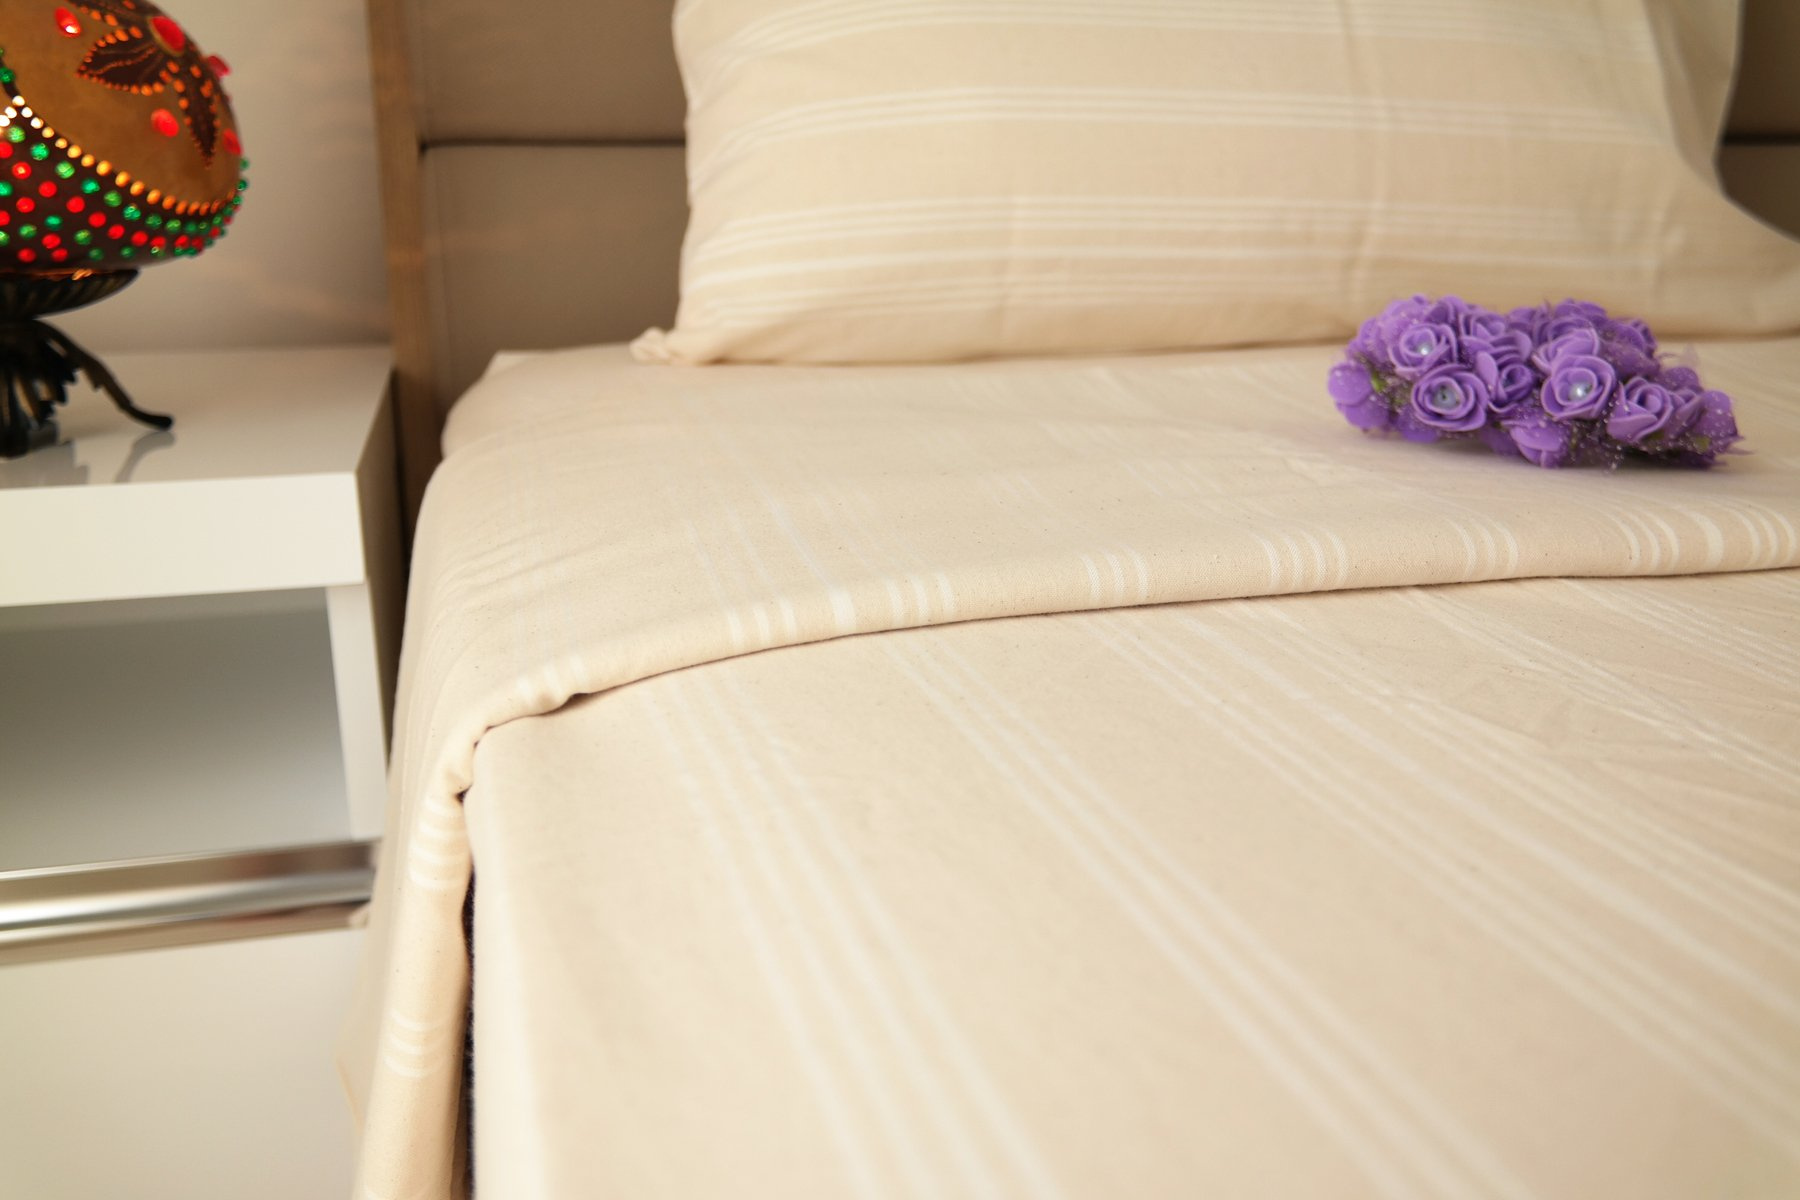 Bepoe 100% Pure & Organic Cotton Bed Linen Sheets Set Natural Dyed Stonewashed Softened Chemical Free (Twin) by Bepoe